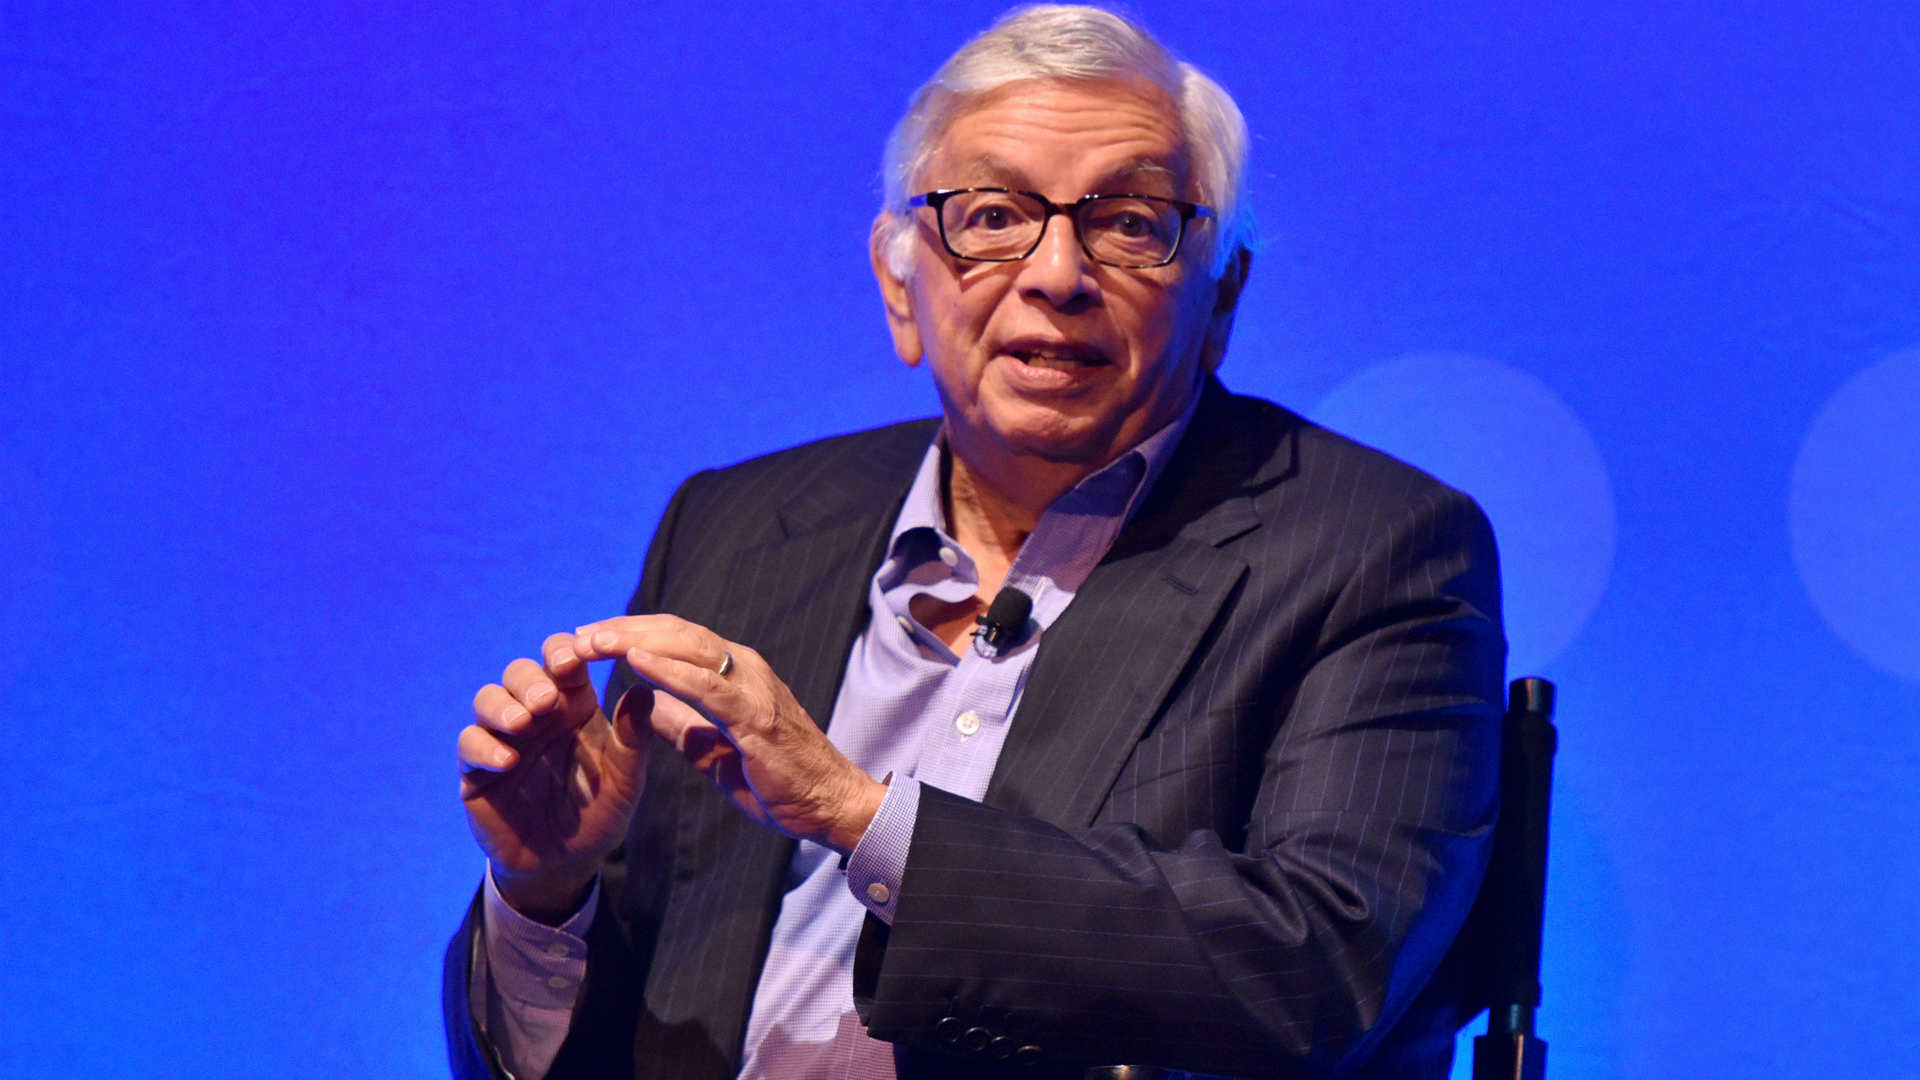 Ex-commissioner Stern: NBA should change policy on marijuana